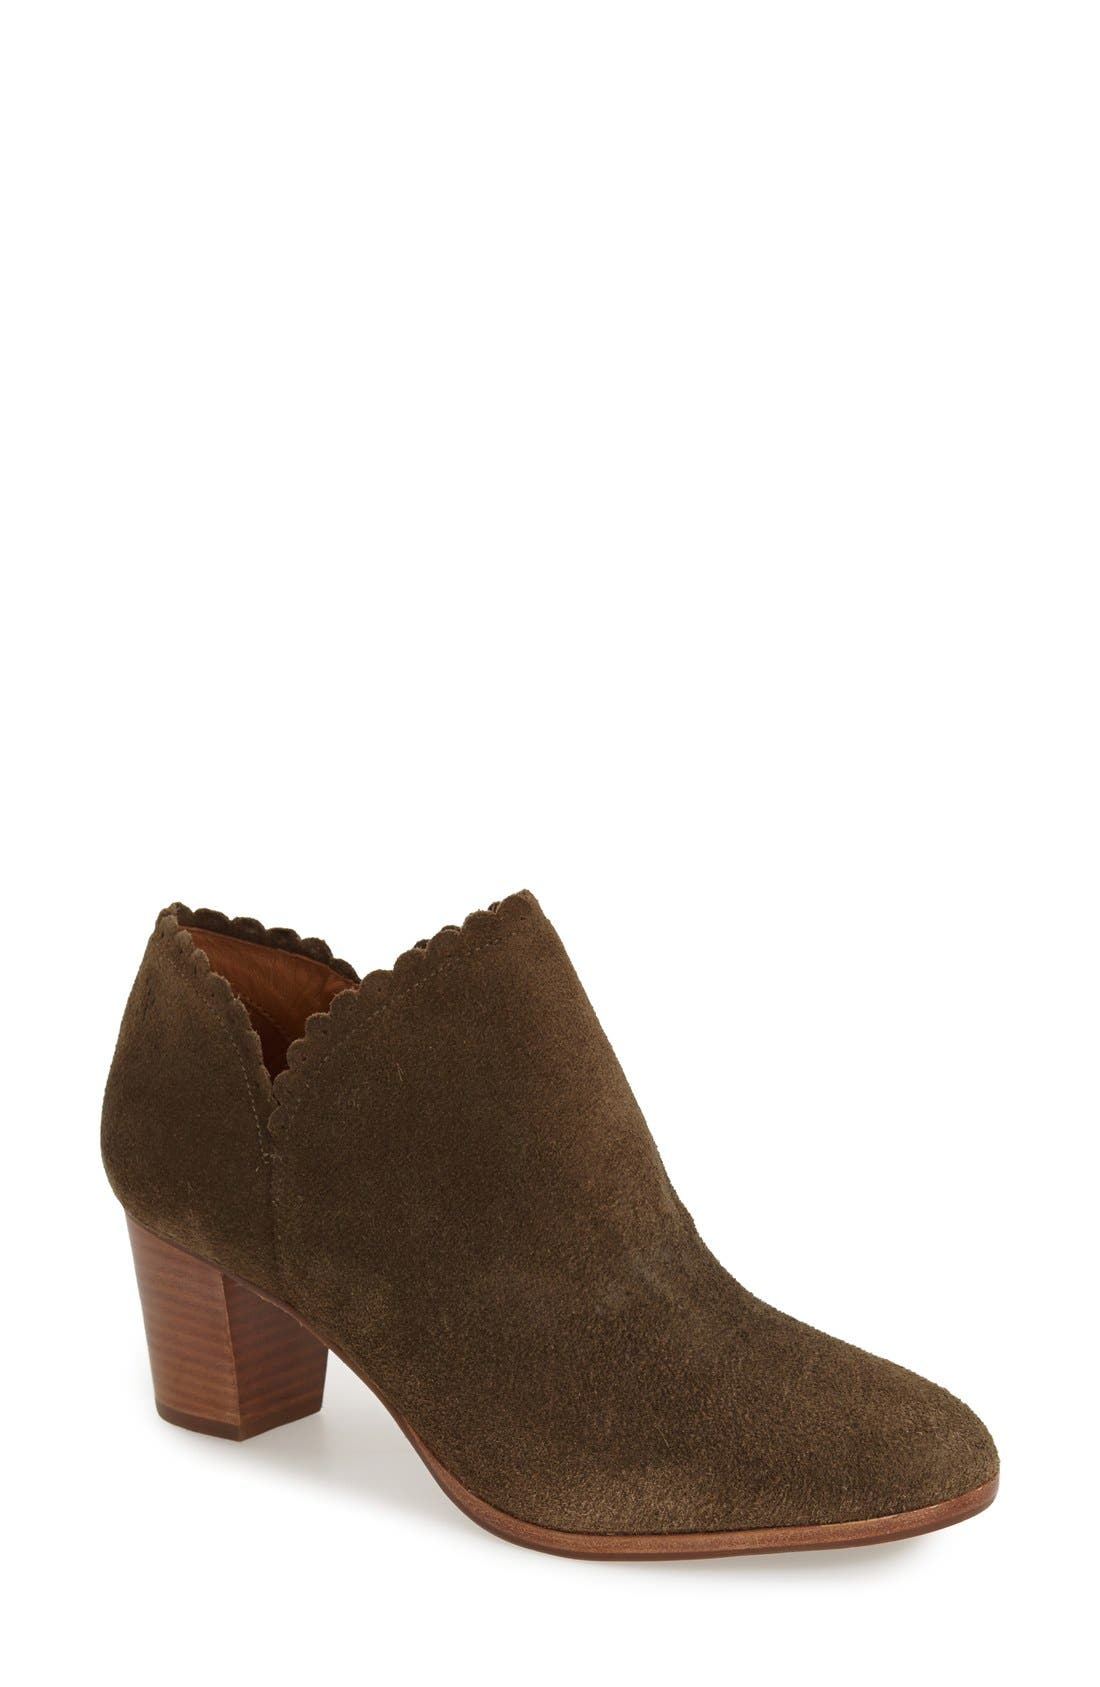 'Marianne' Bootie,                         Main,                         color, Olive Suede